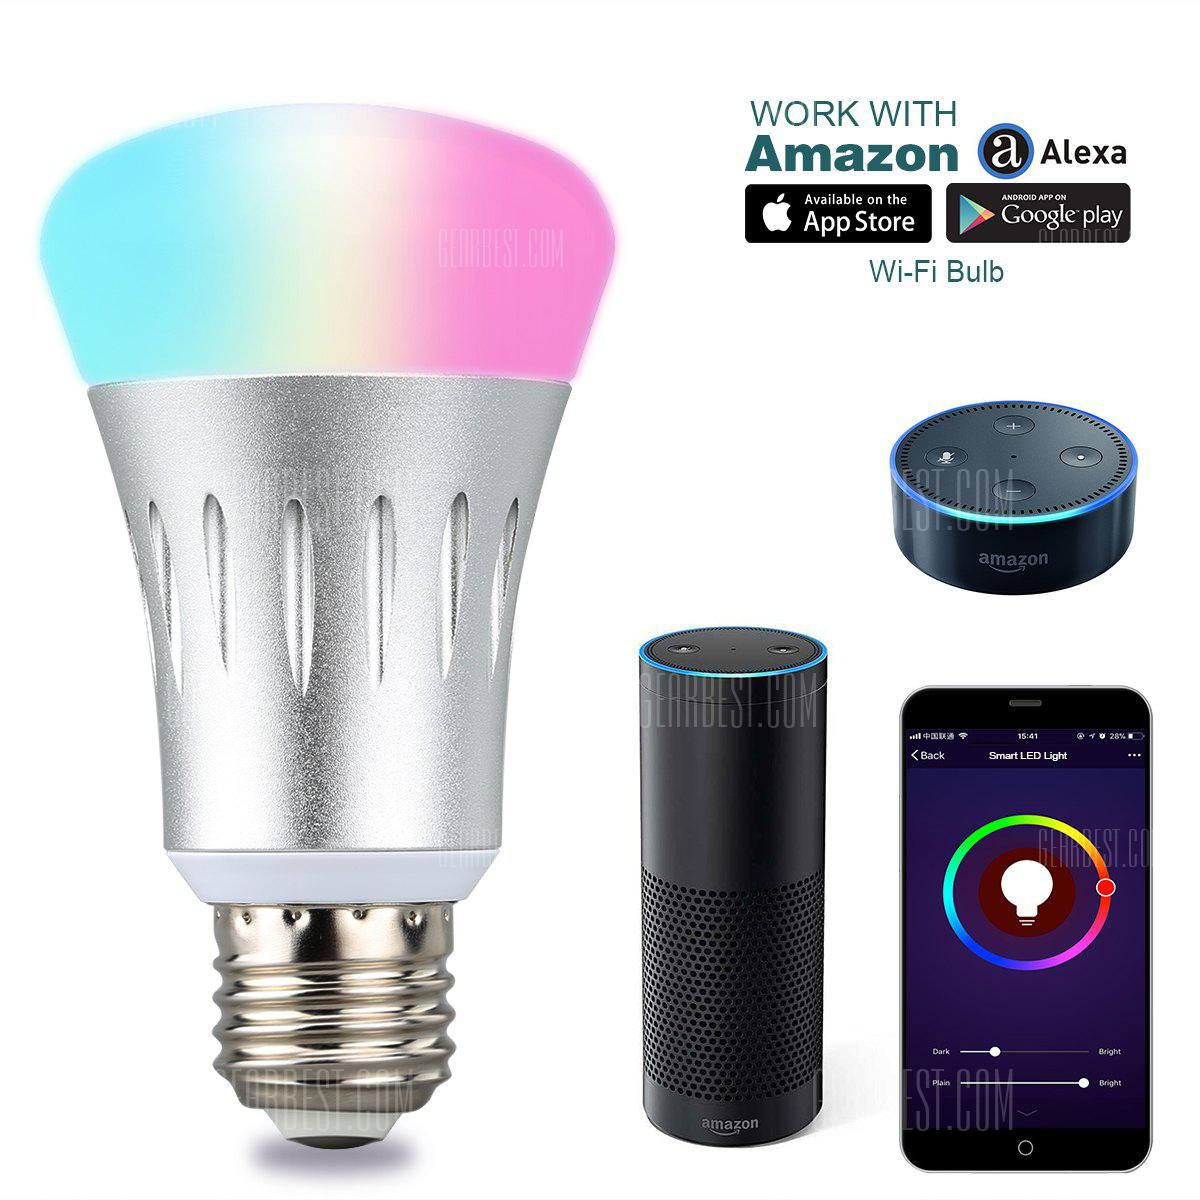 Excelvan WIFI Smart LED Bulb, Works with Amazon Alexa, E27 Dimmable Multicolored LED for iOS Android, App Control / Voice Control, Home Lighting